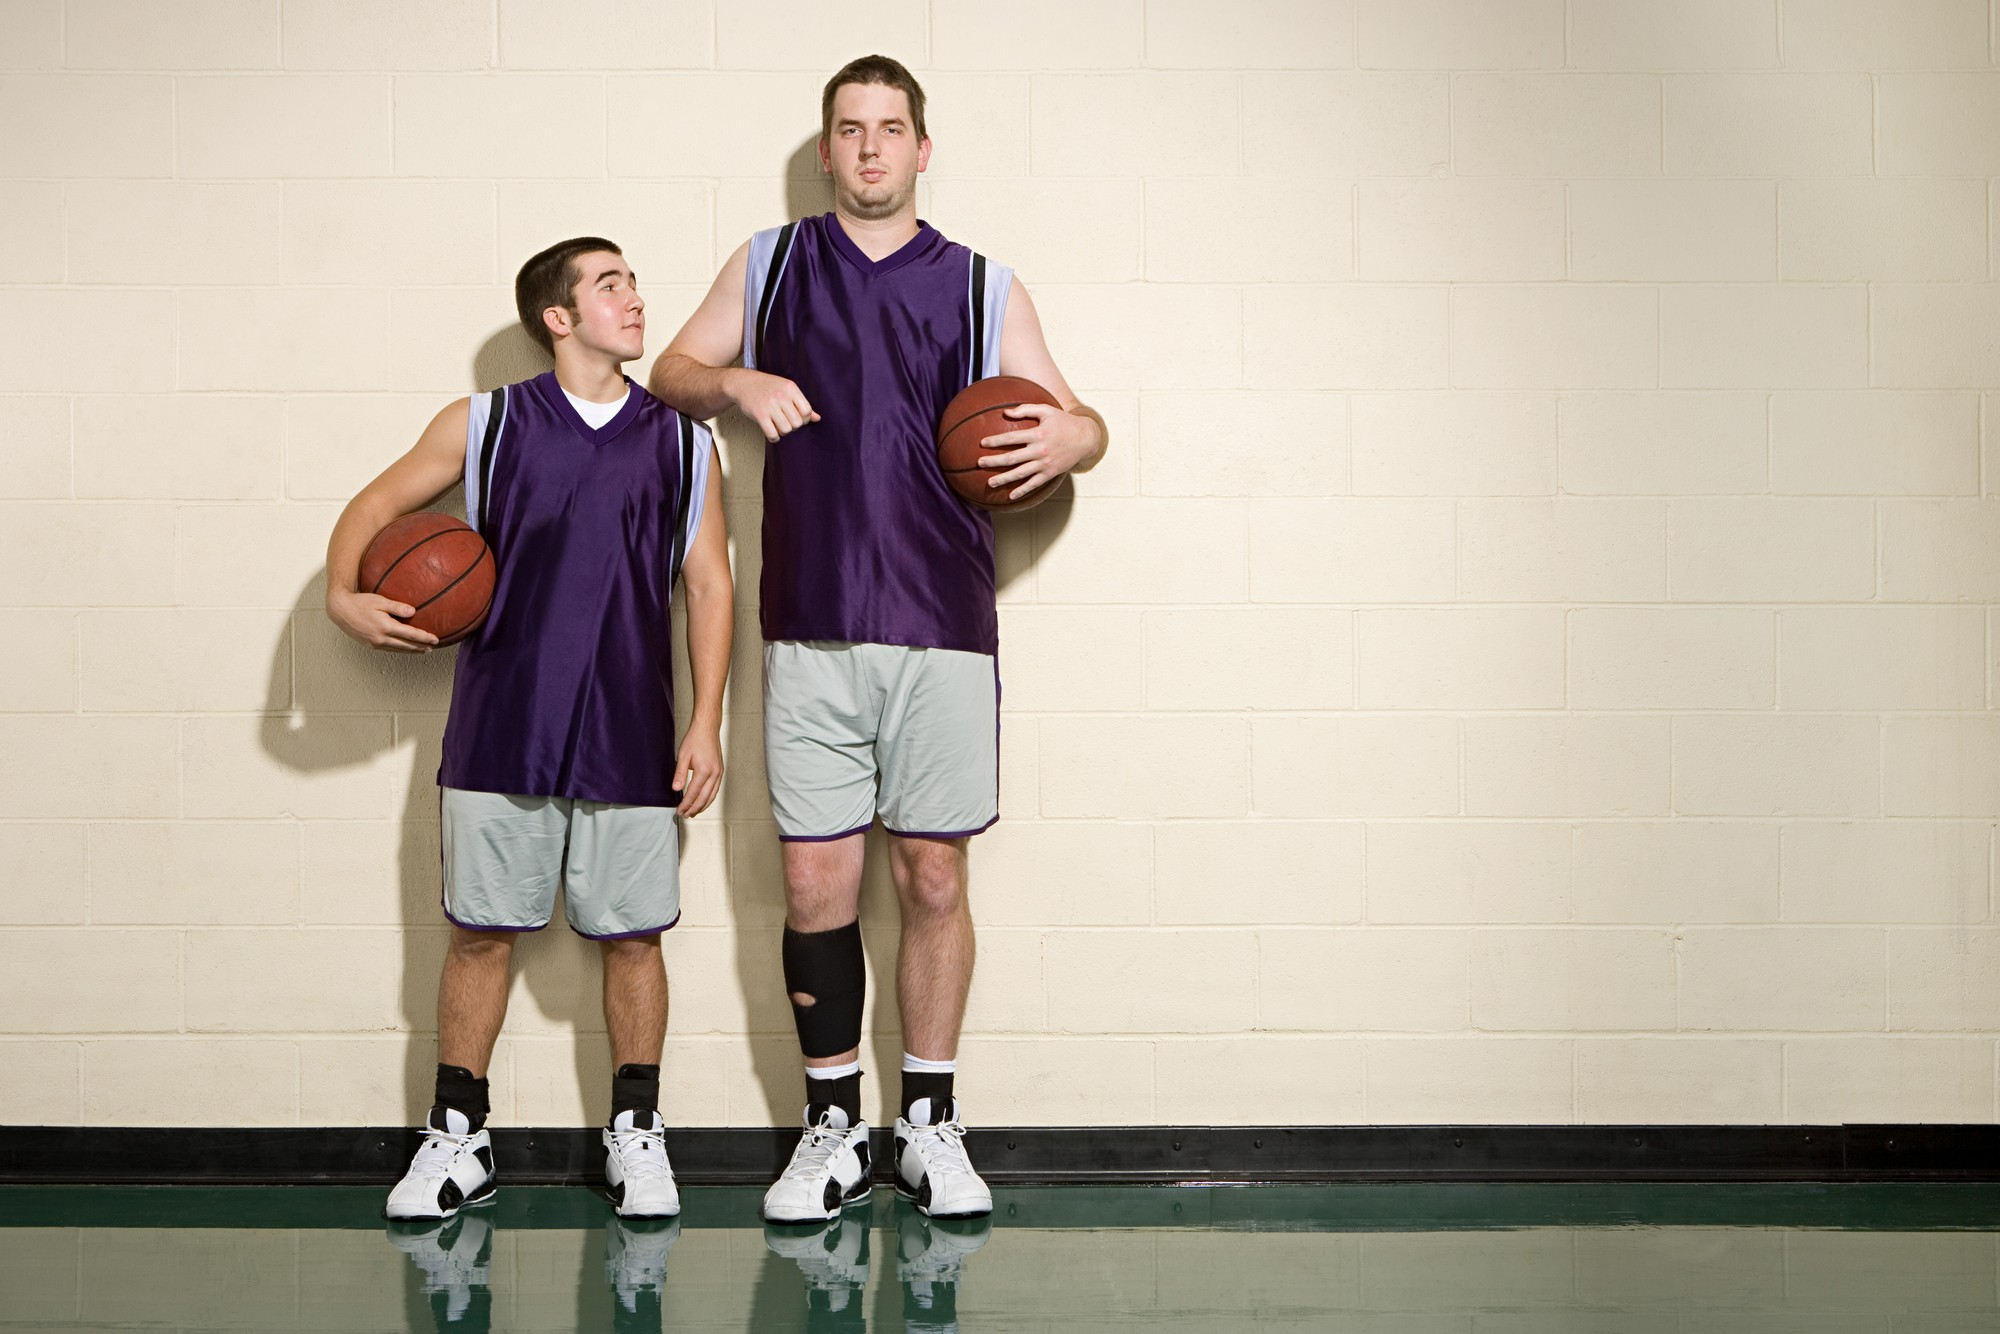 Not all tall people play basketball